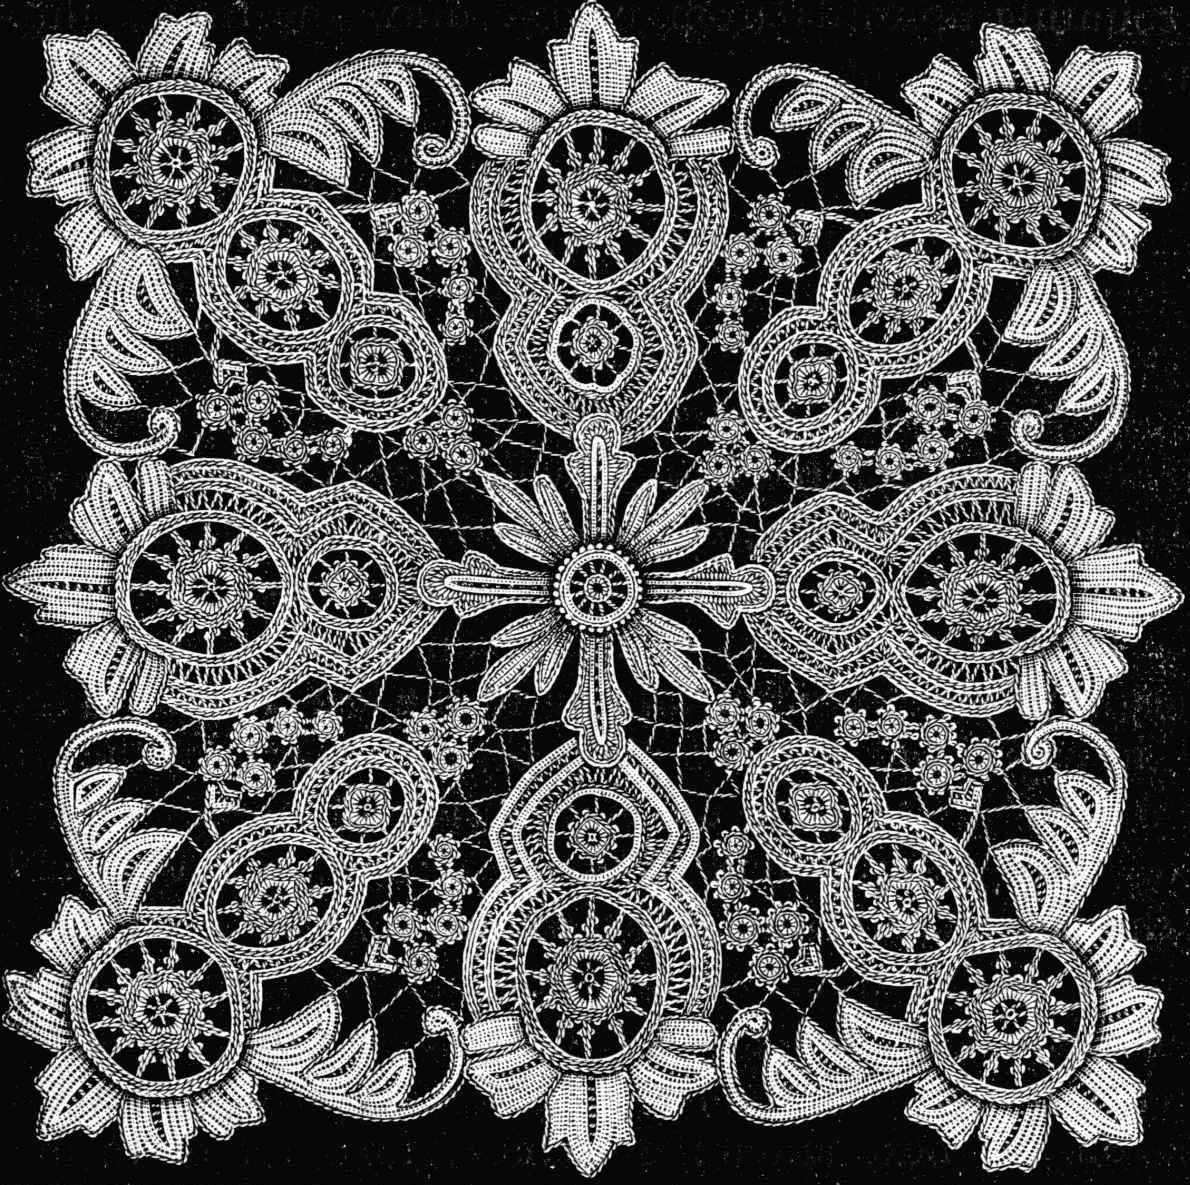 Crochet Lace Pattern : Labels lace model , lace pattern , new lace pattern